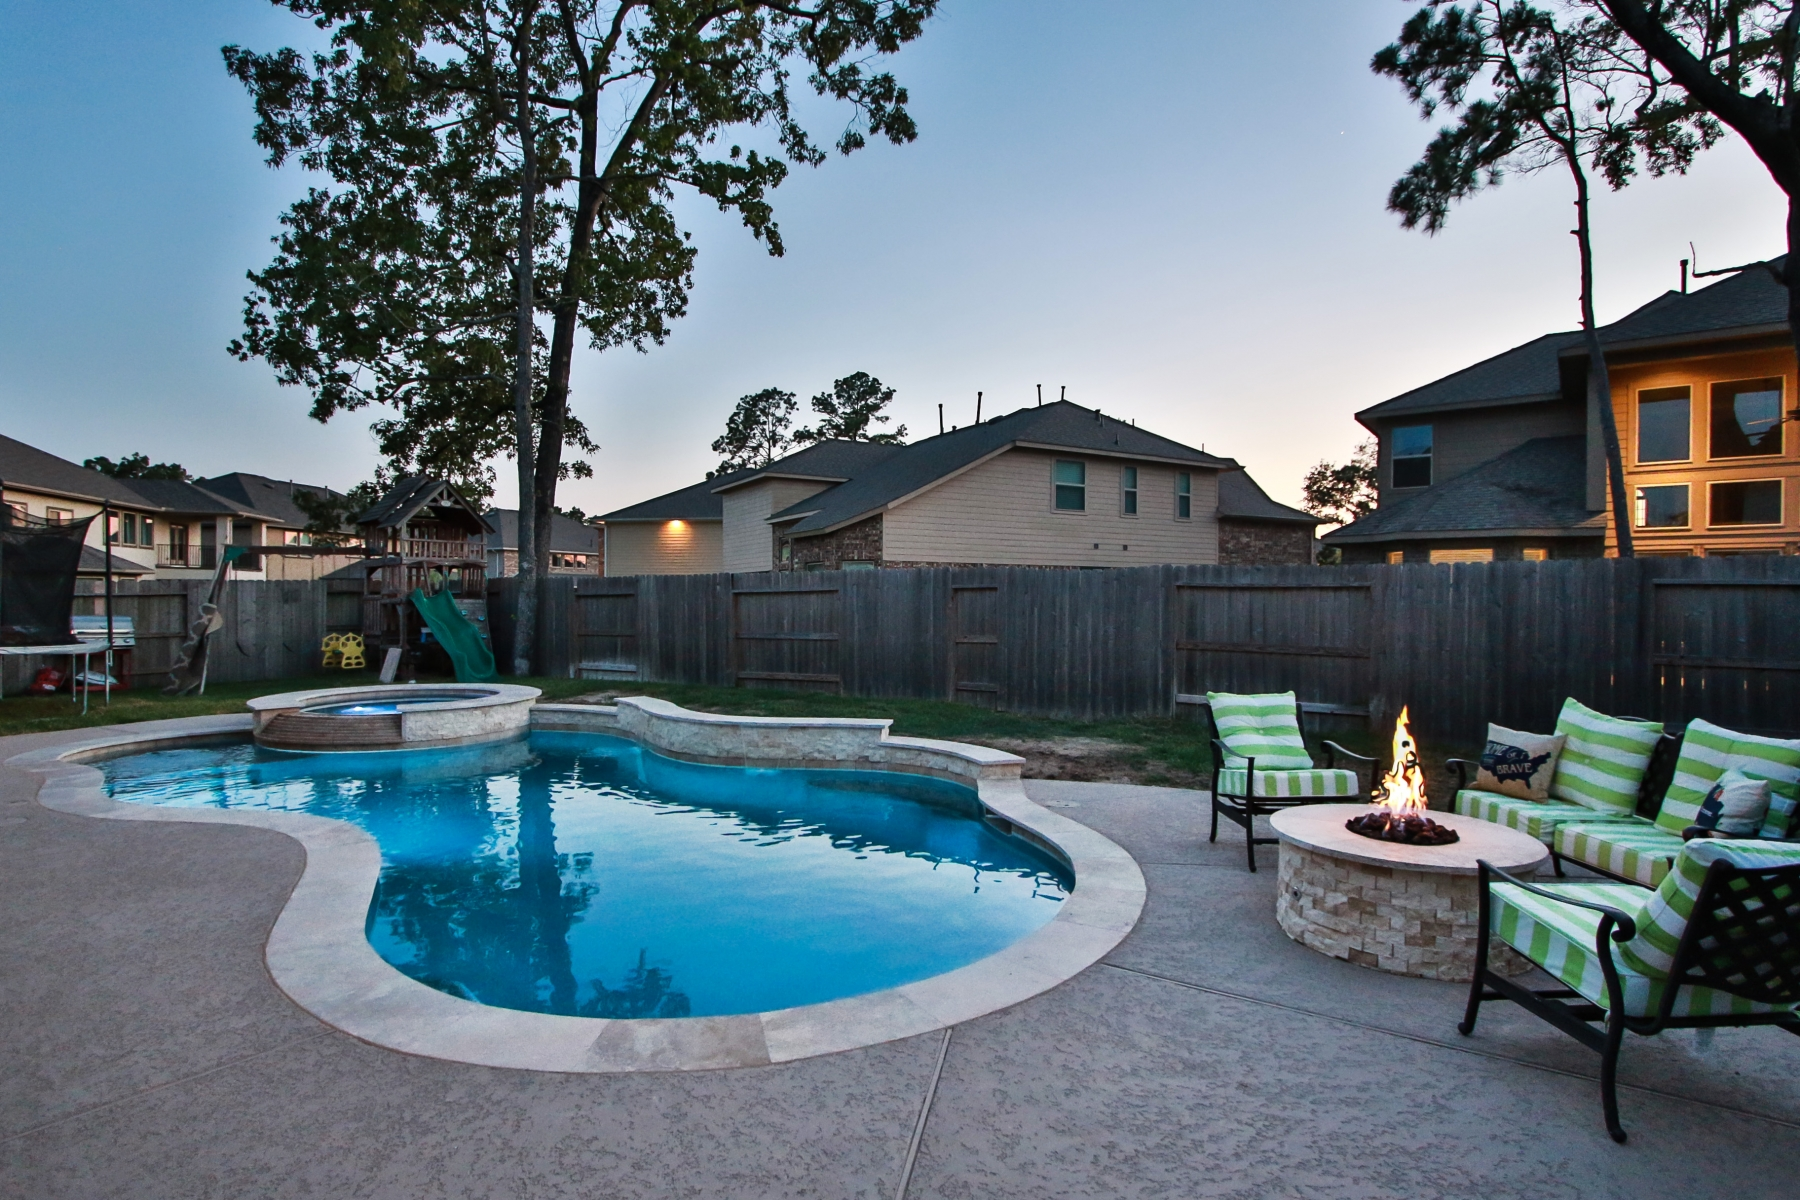 Freeform Pool and Fire Pit at Night